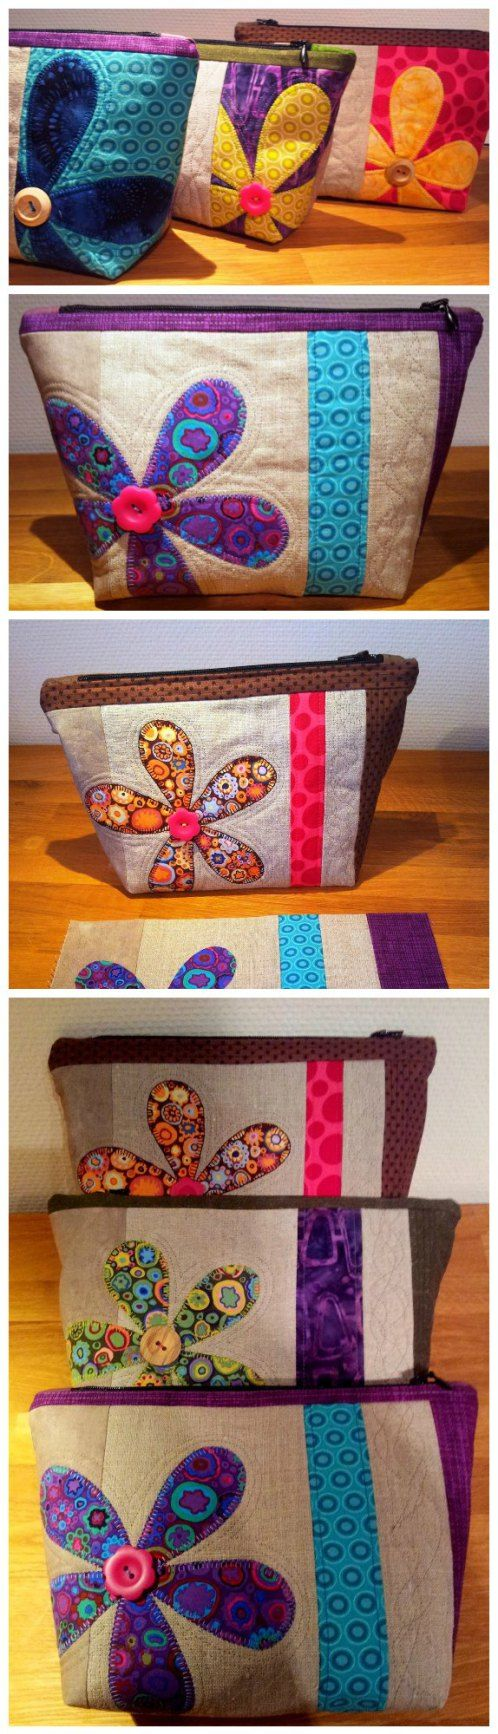 Free sewing pattern. With applique, quilting, flowers, bright fabrics, pieced panels, etc, these cute cosmetics bags are a great way to teach sewing or practice your skills too. Cant stop making them!